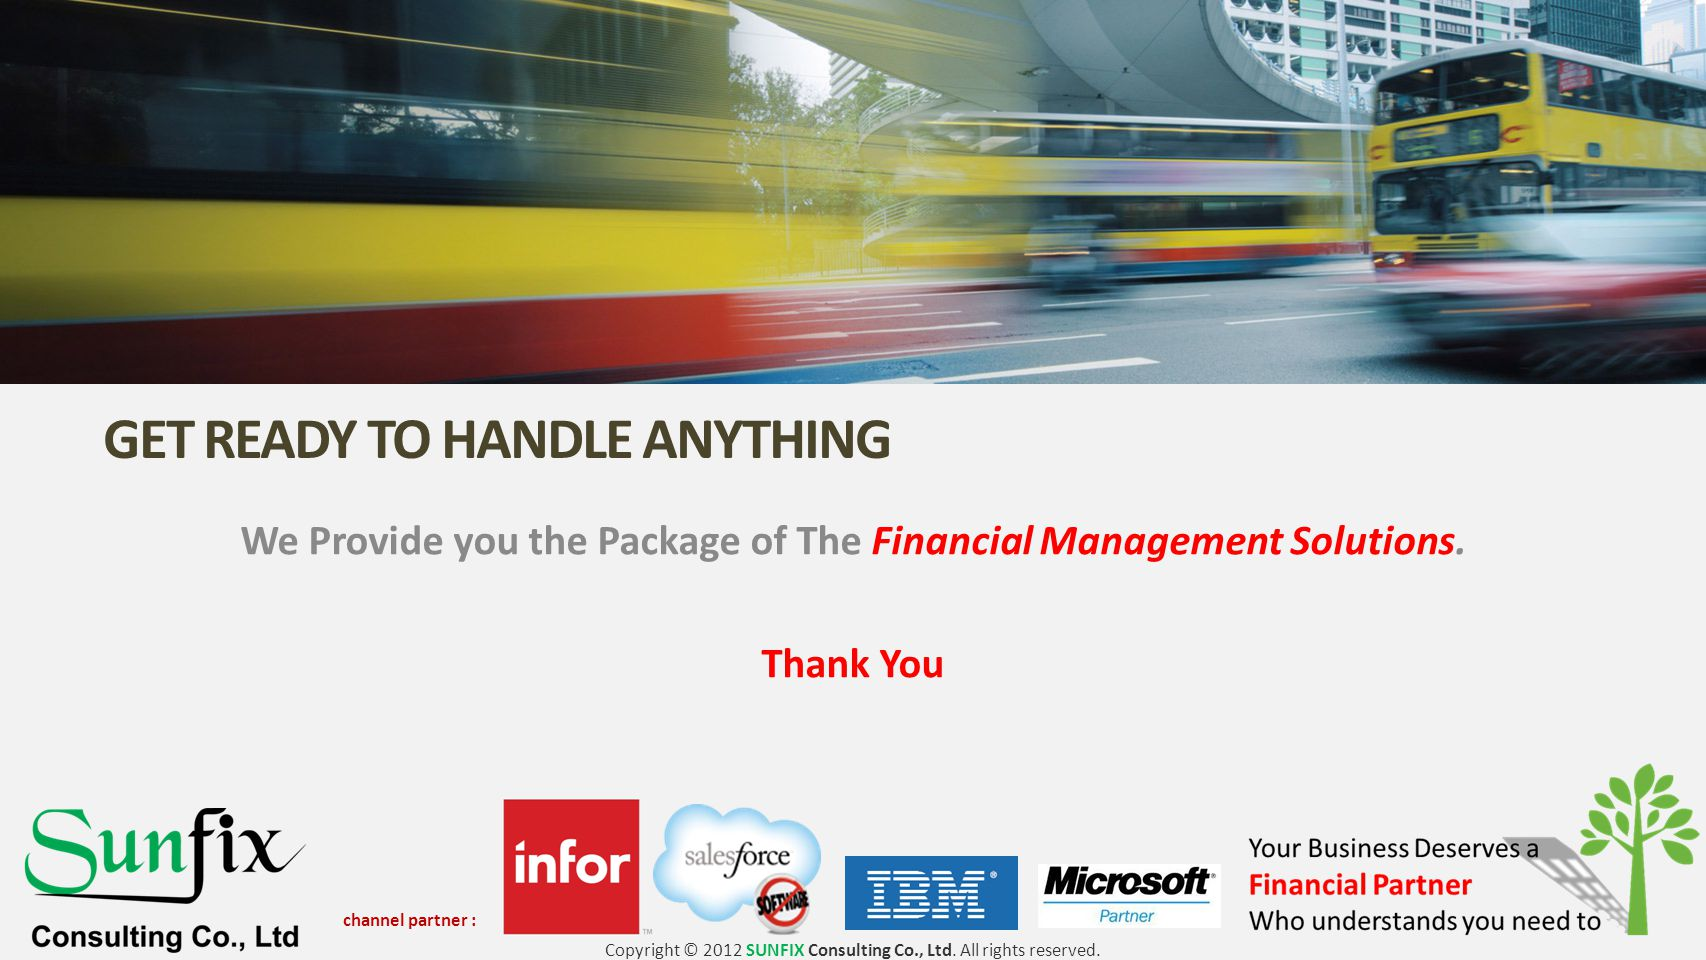 We Provide you the Package of The Financial Management Solutions.